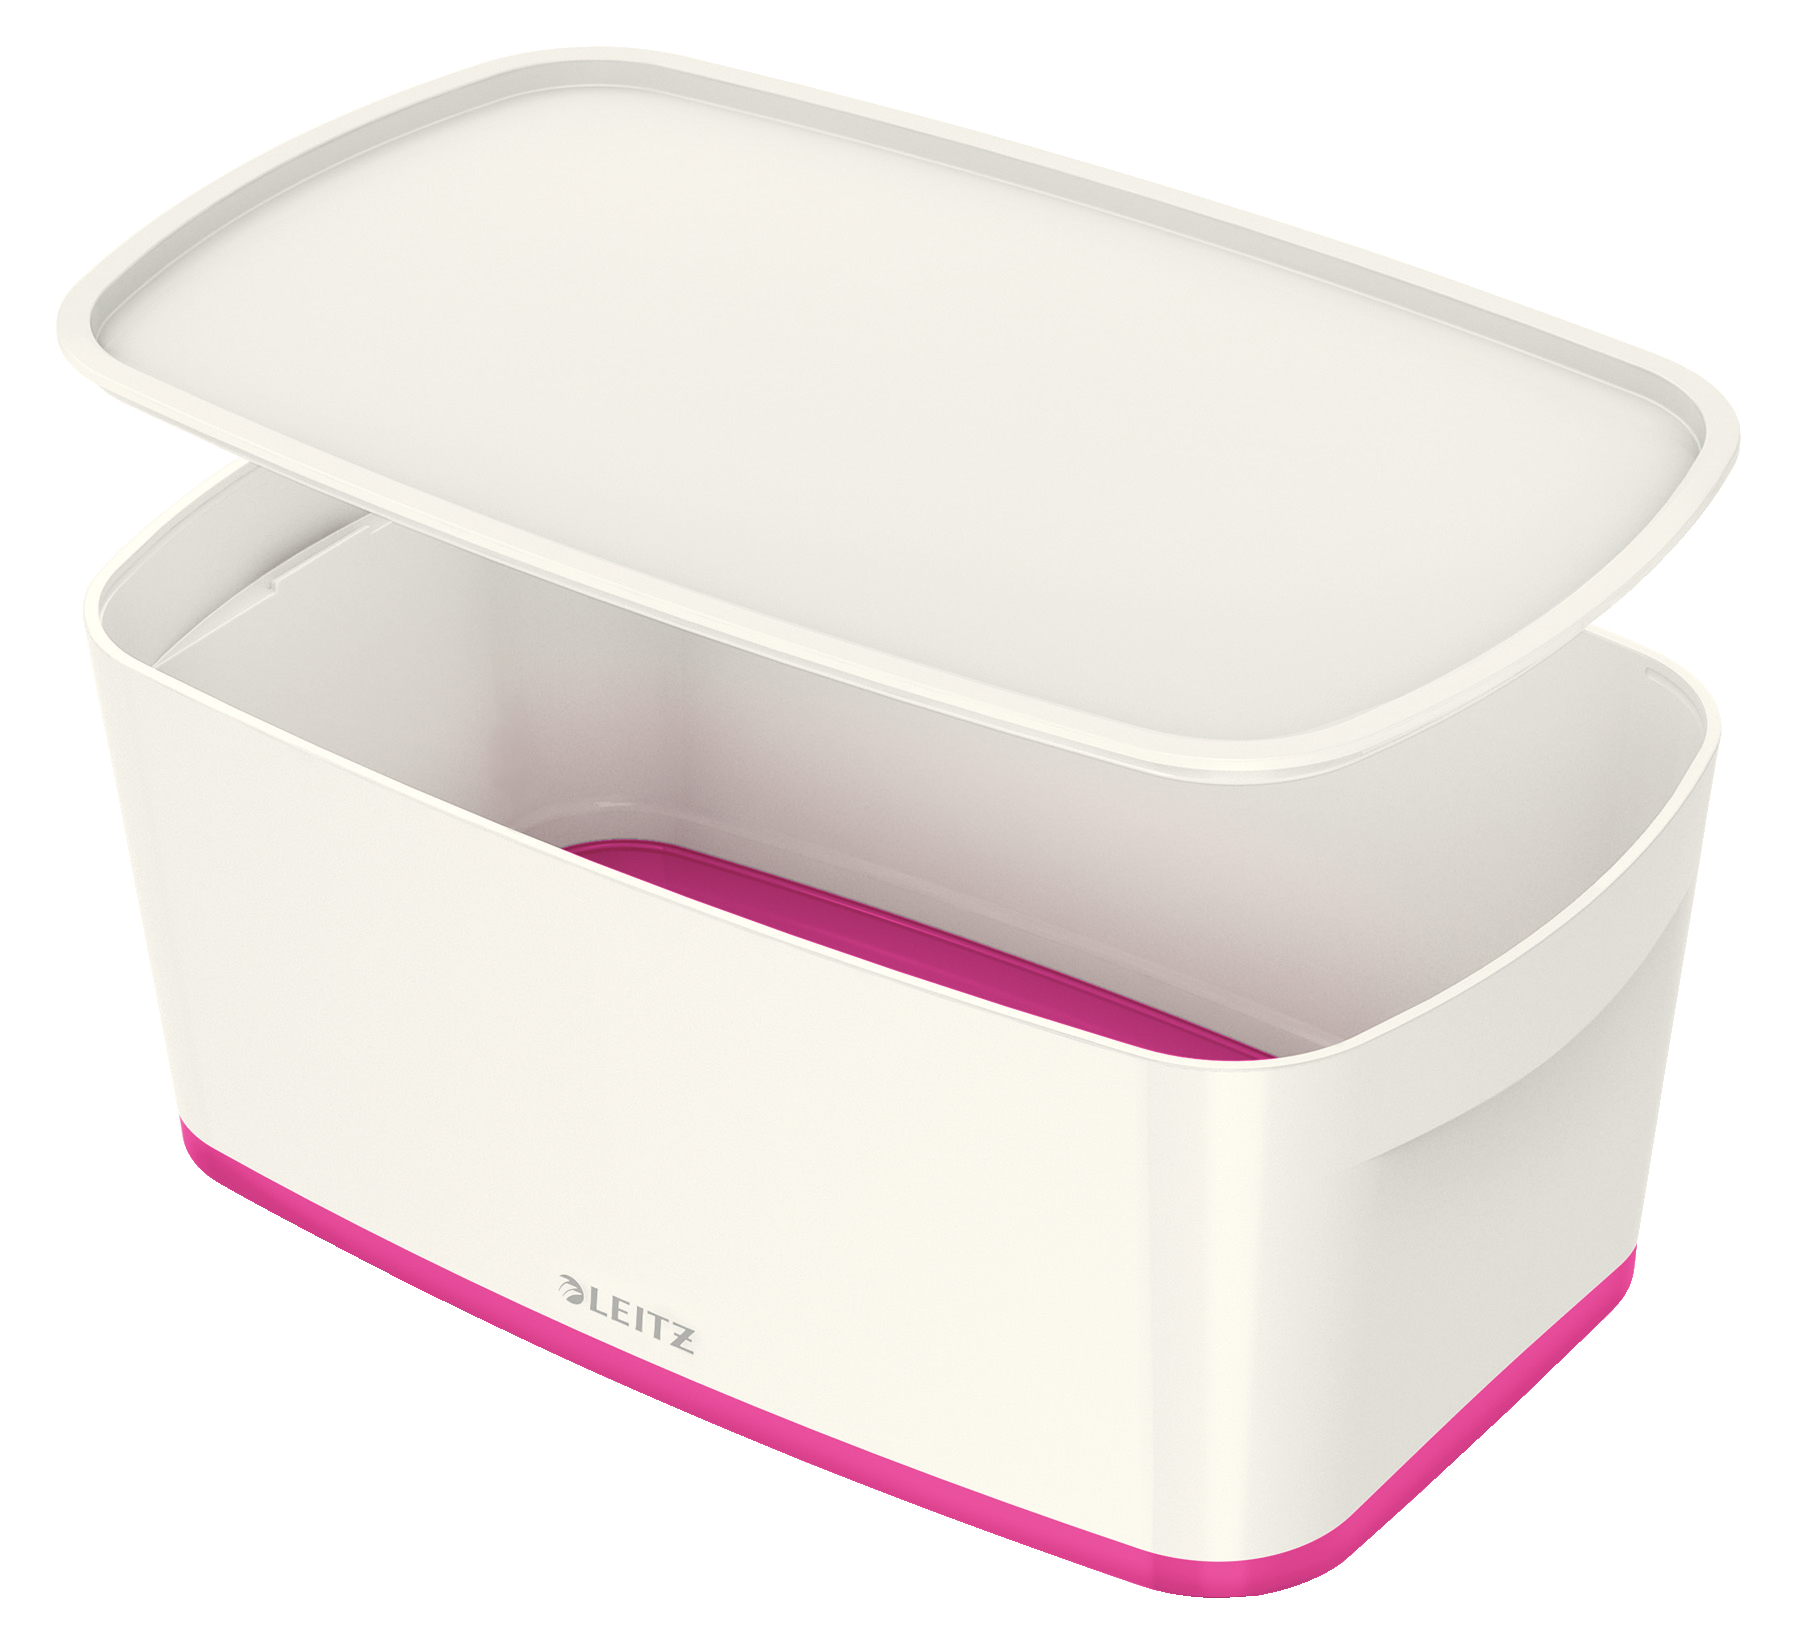 Leitz MyBox Small with Lid WOW White Pink